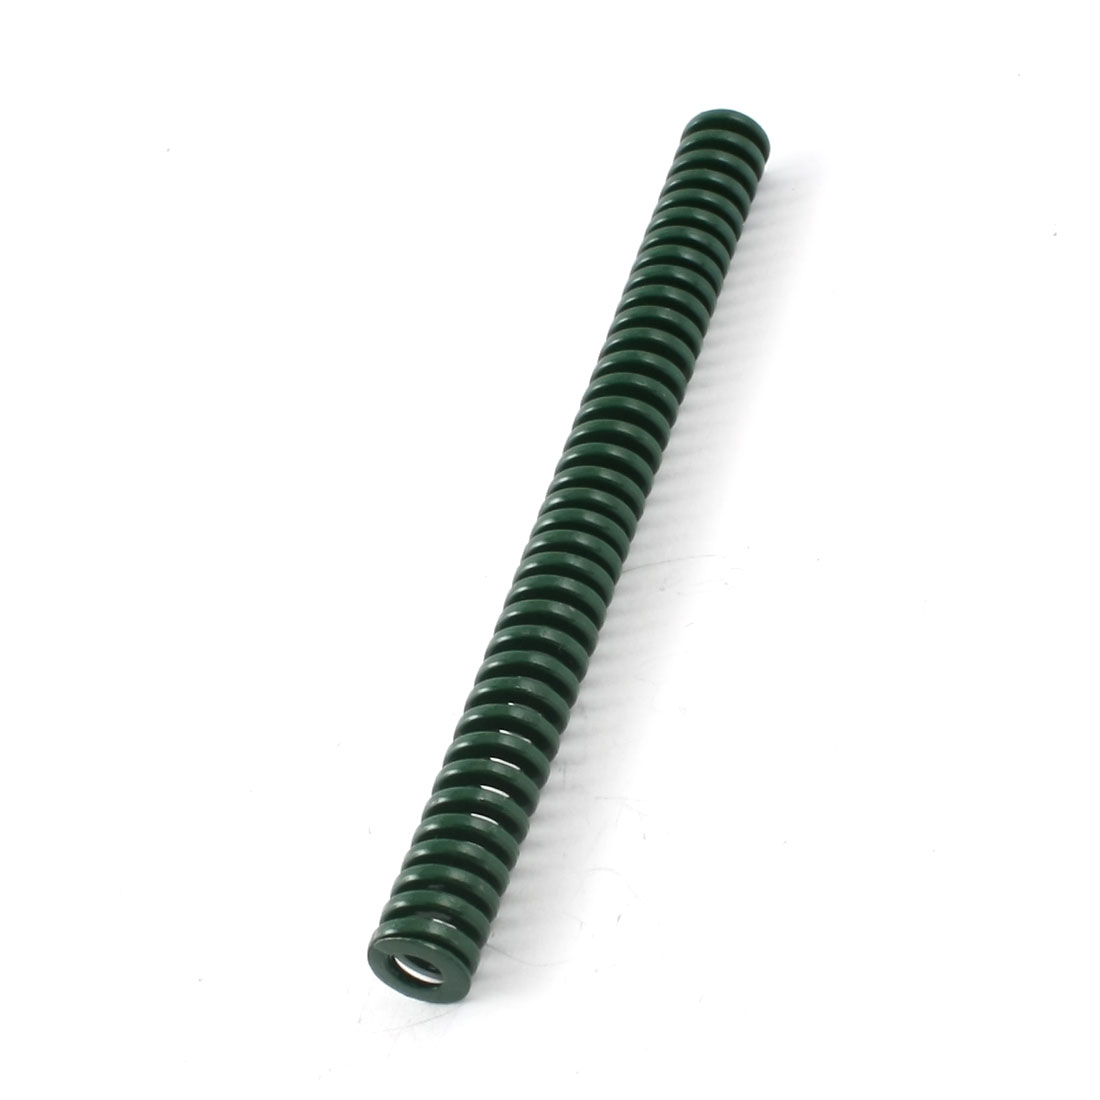 Heavy Load Green Spiral Stamping Compression Die Spring 8x85mm